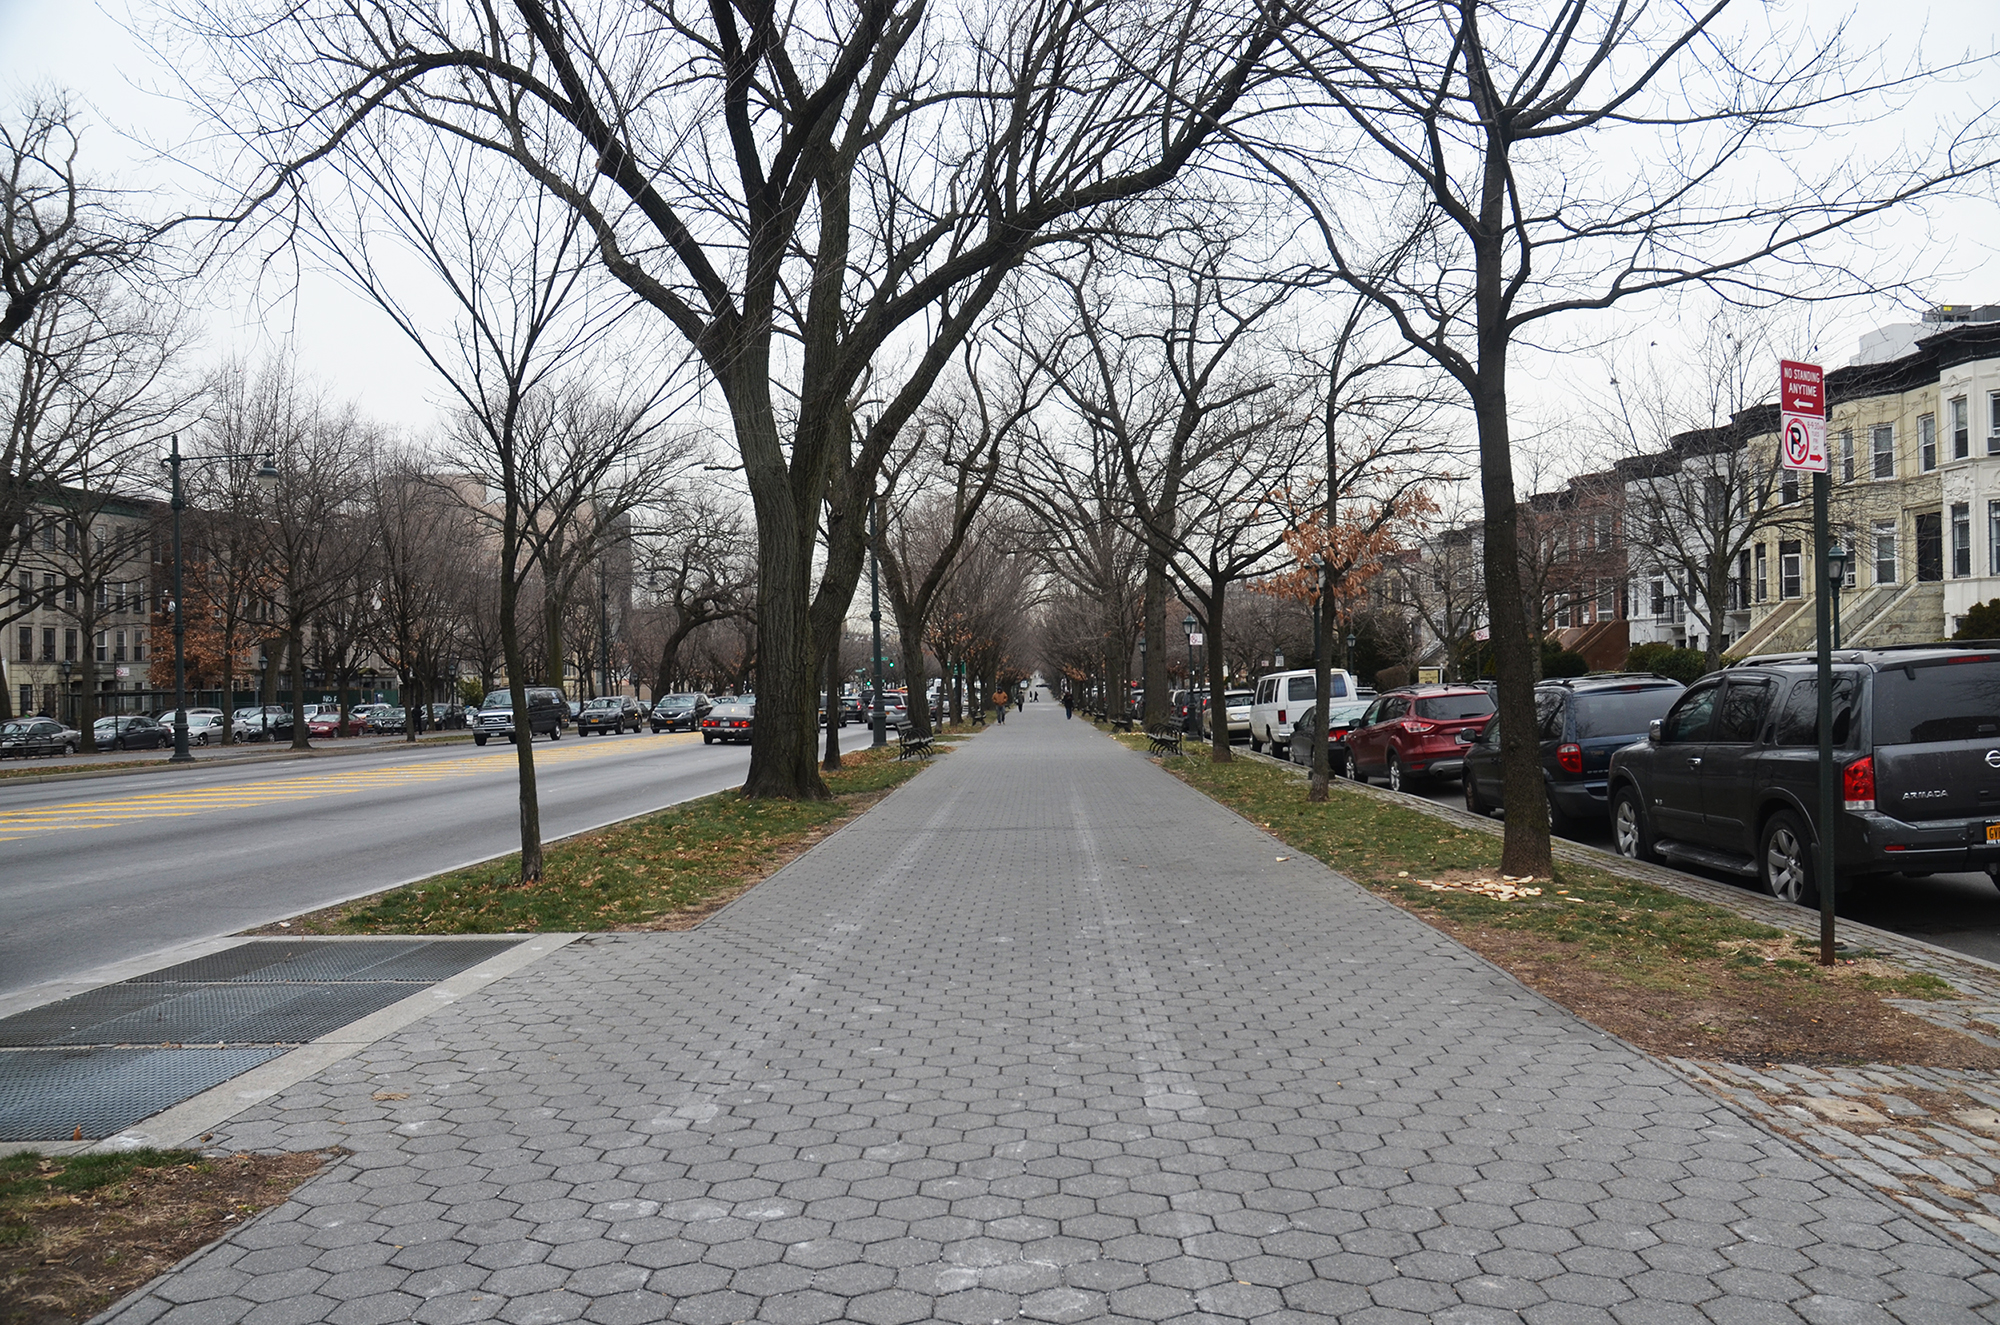 Eastern Parkway in Crown Heights, Brooklyn, January 2016. Photo by Evan Bindelglass